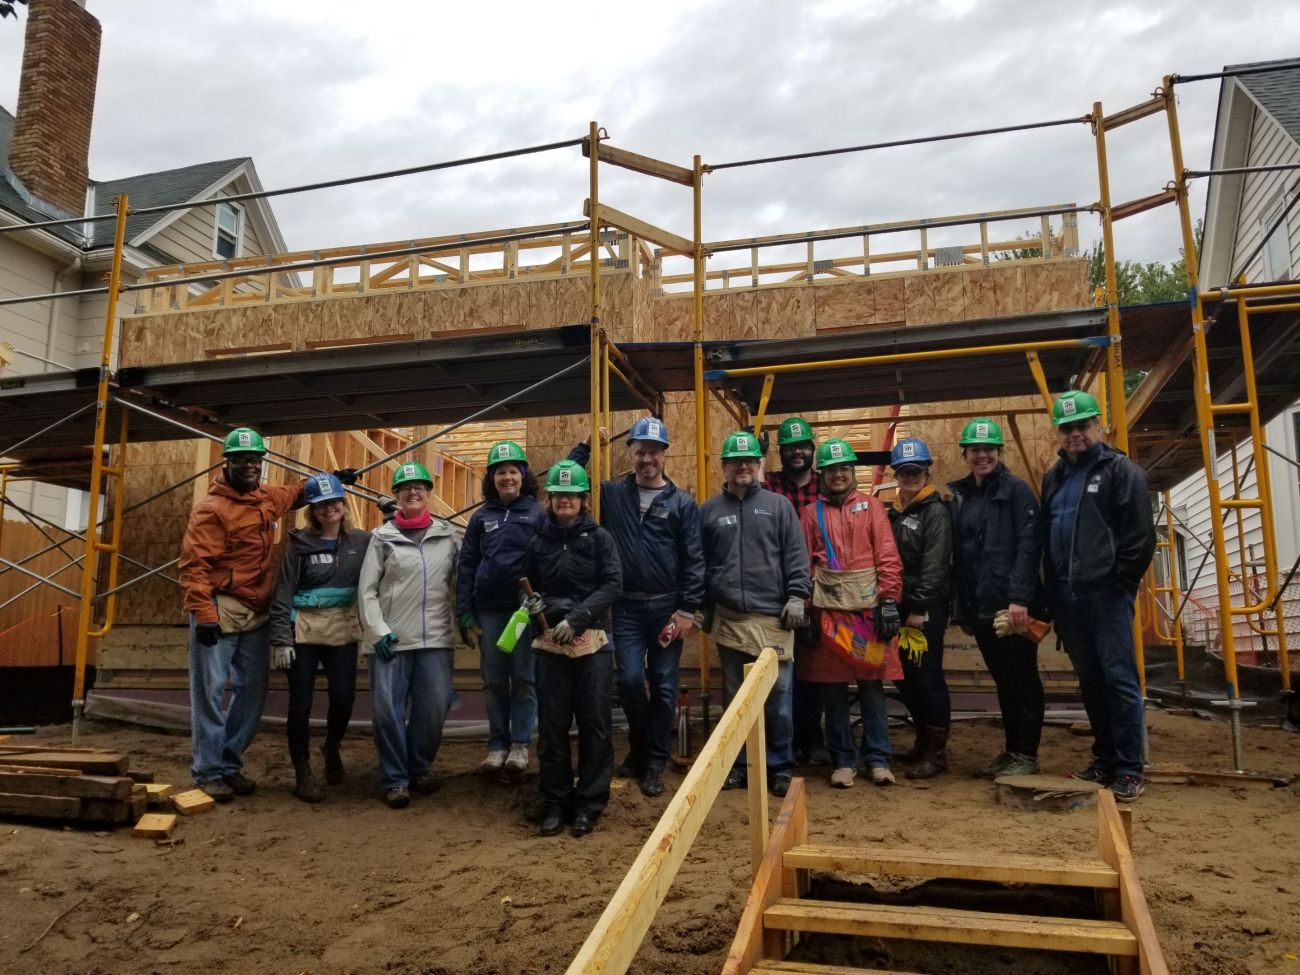 Staff volunteer day with Habitat for Humanity